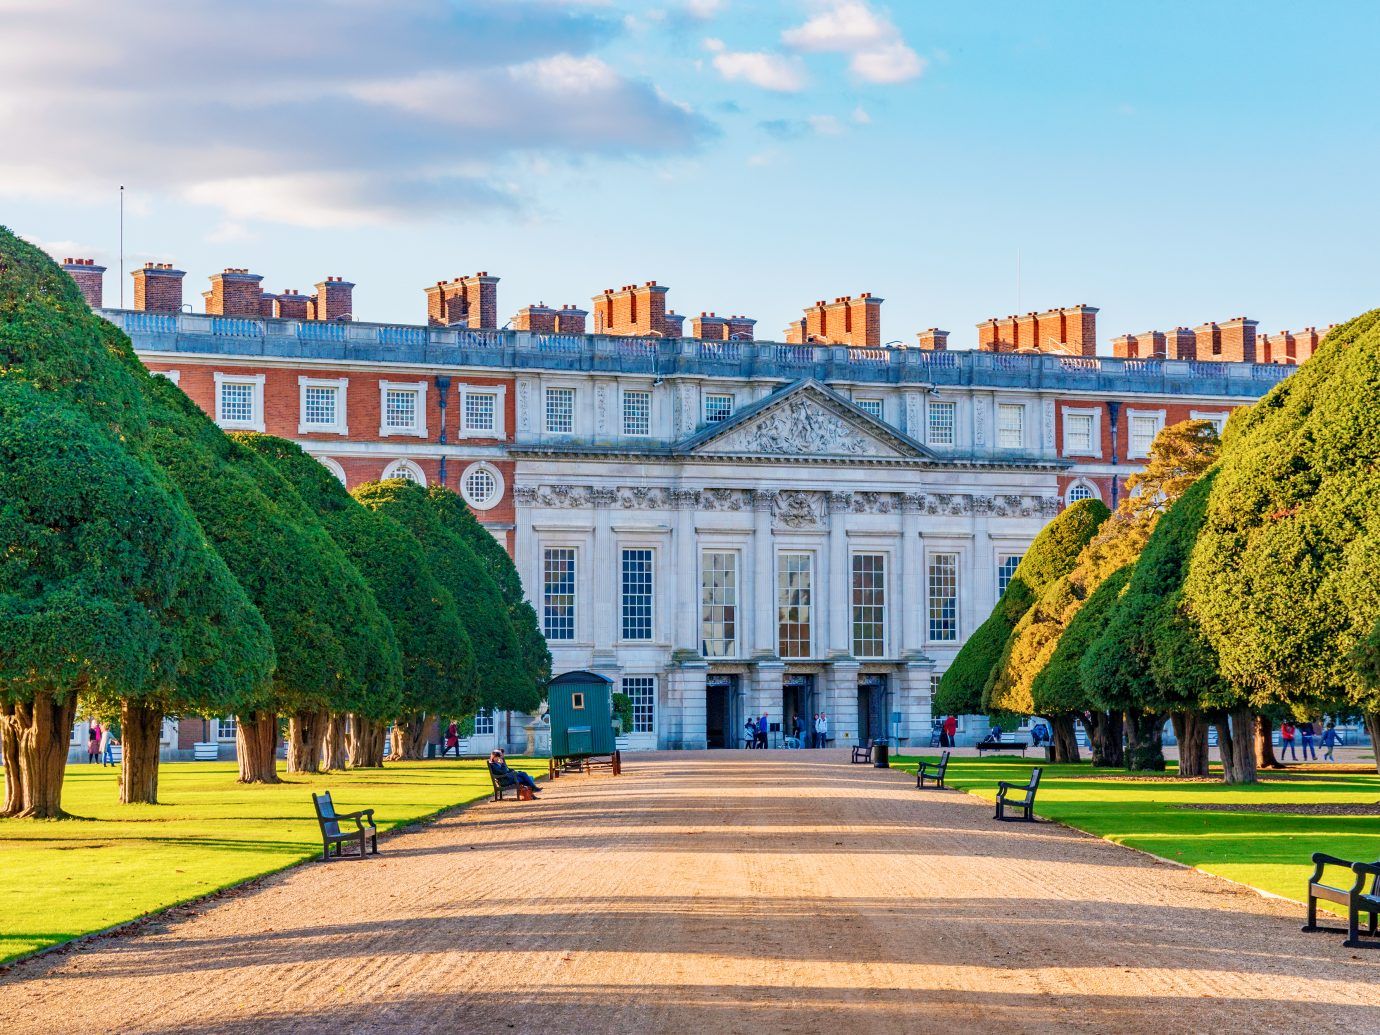 London: Scenery and architecture of Hampton Court Palace, a famous and historic landmark on October 28, 2017 in London